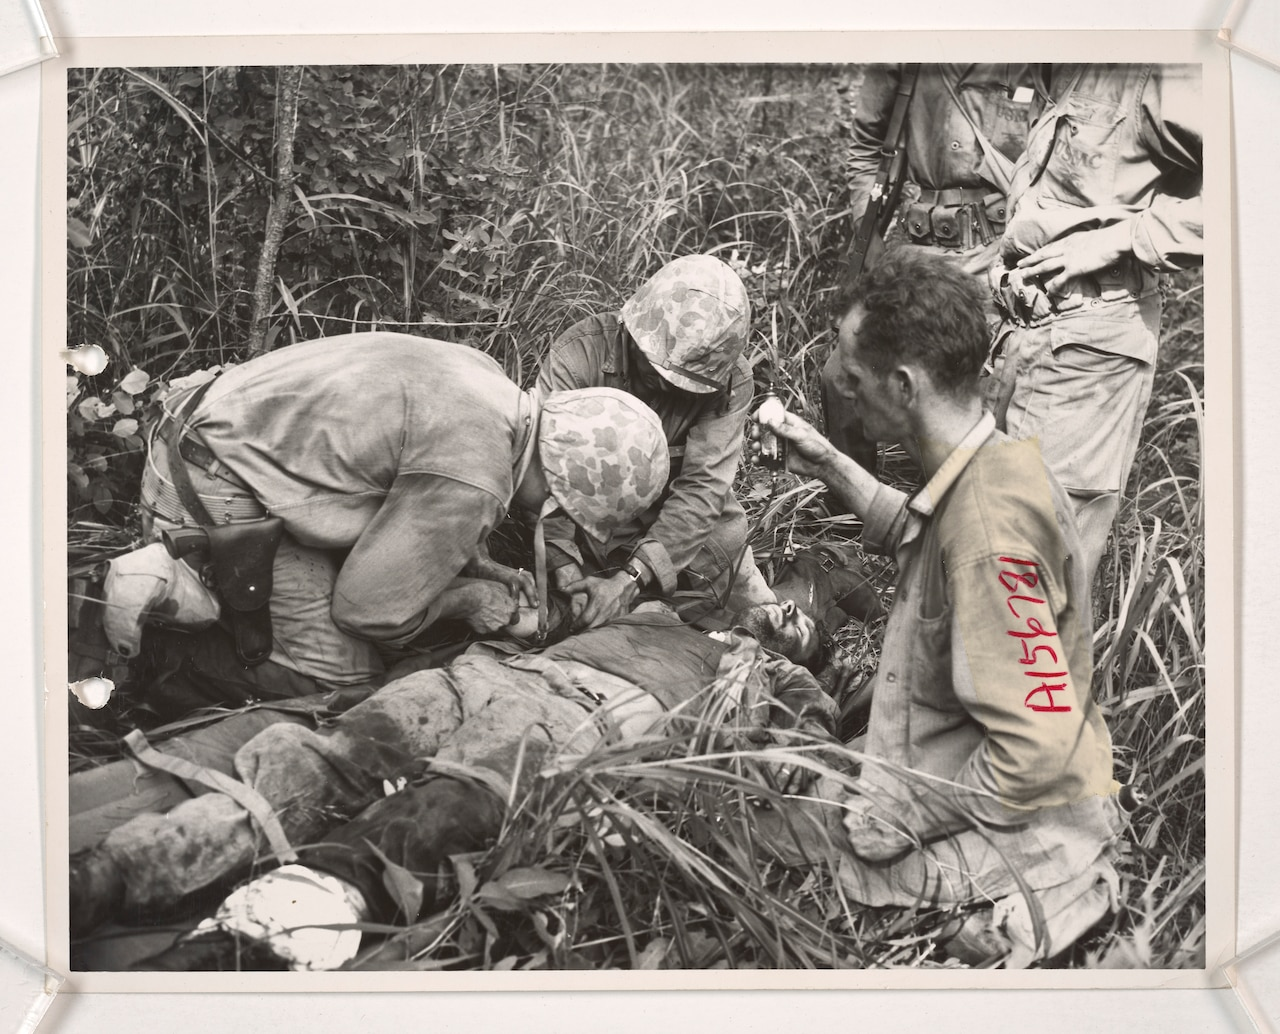 Three men in military uniforms work on an injured serviceman lying down in tall grass.